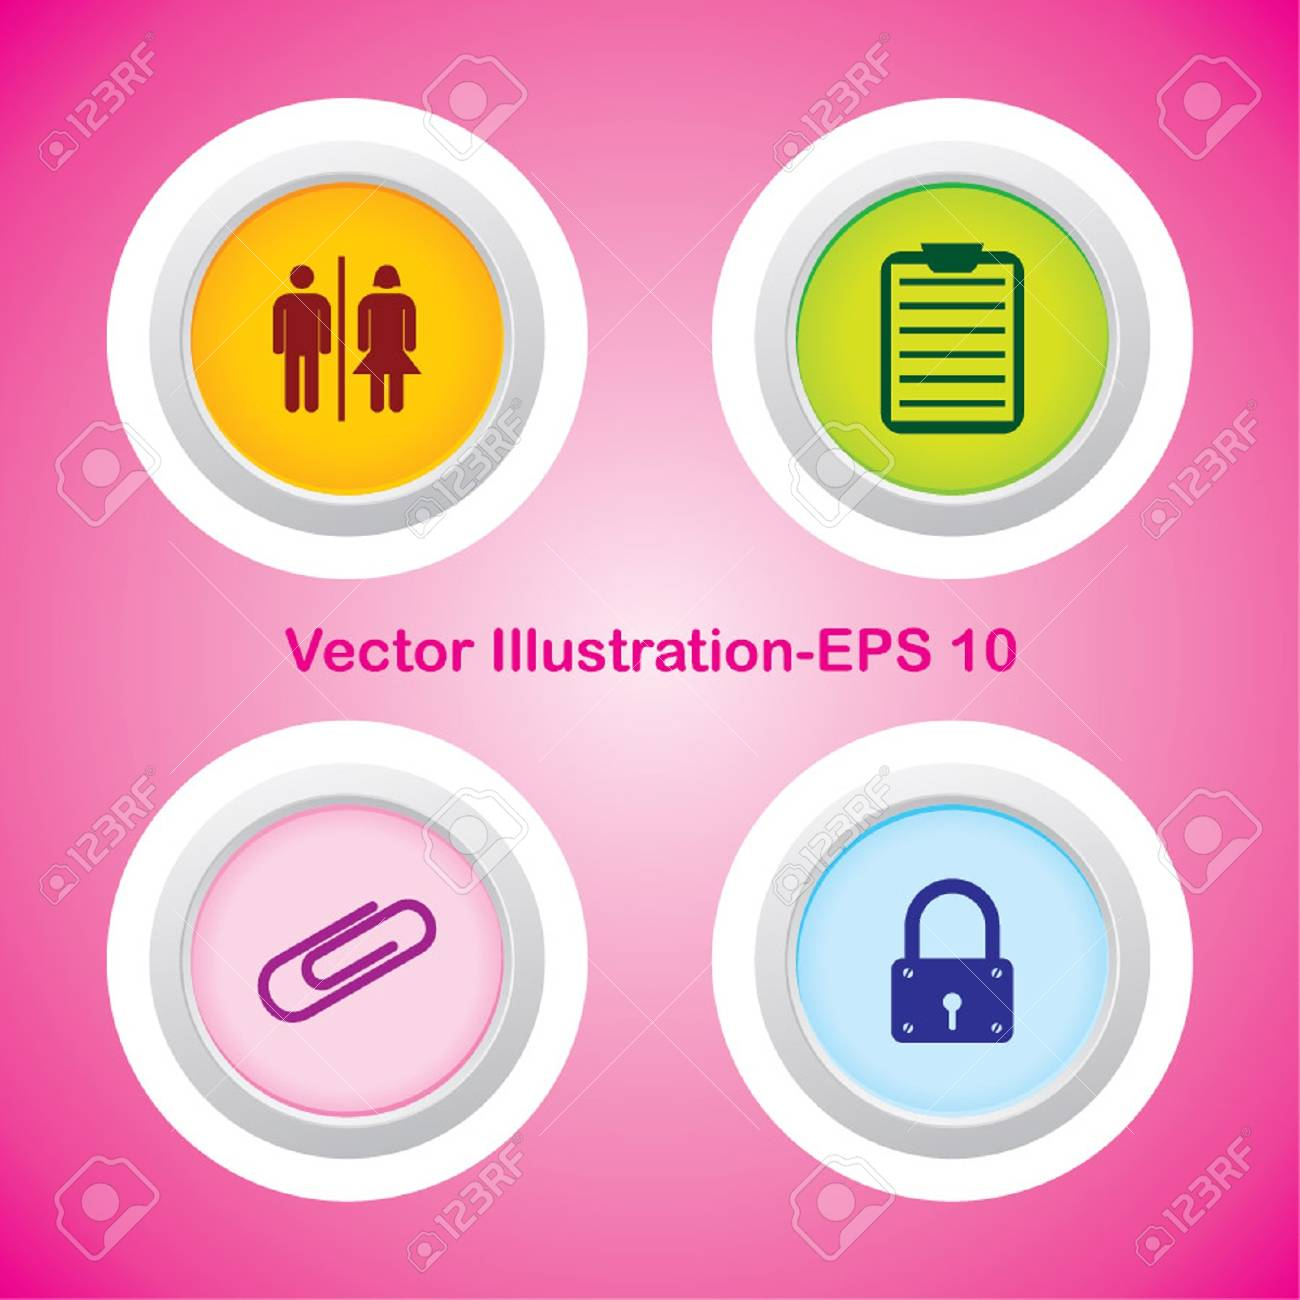 Four Vector Buttons with Very Useful Web Icons Stock Vector - 21700200